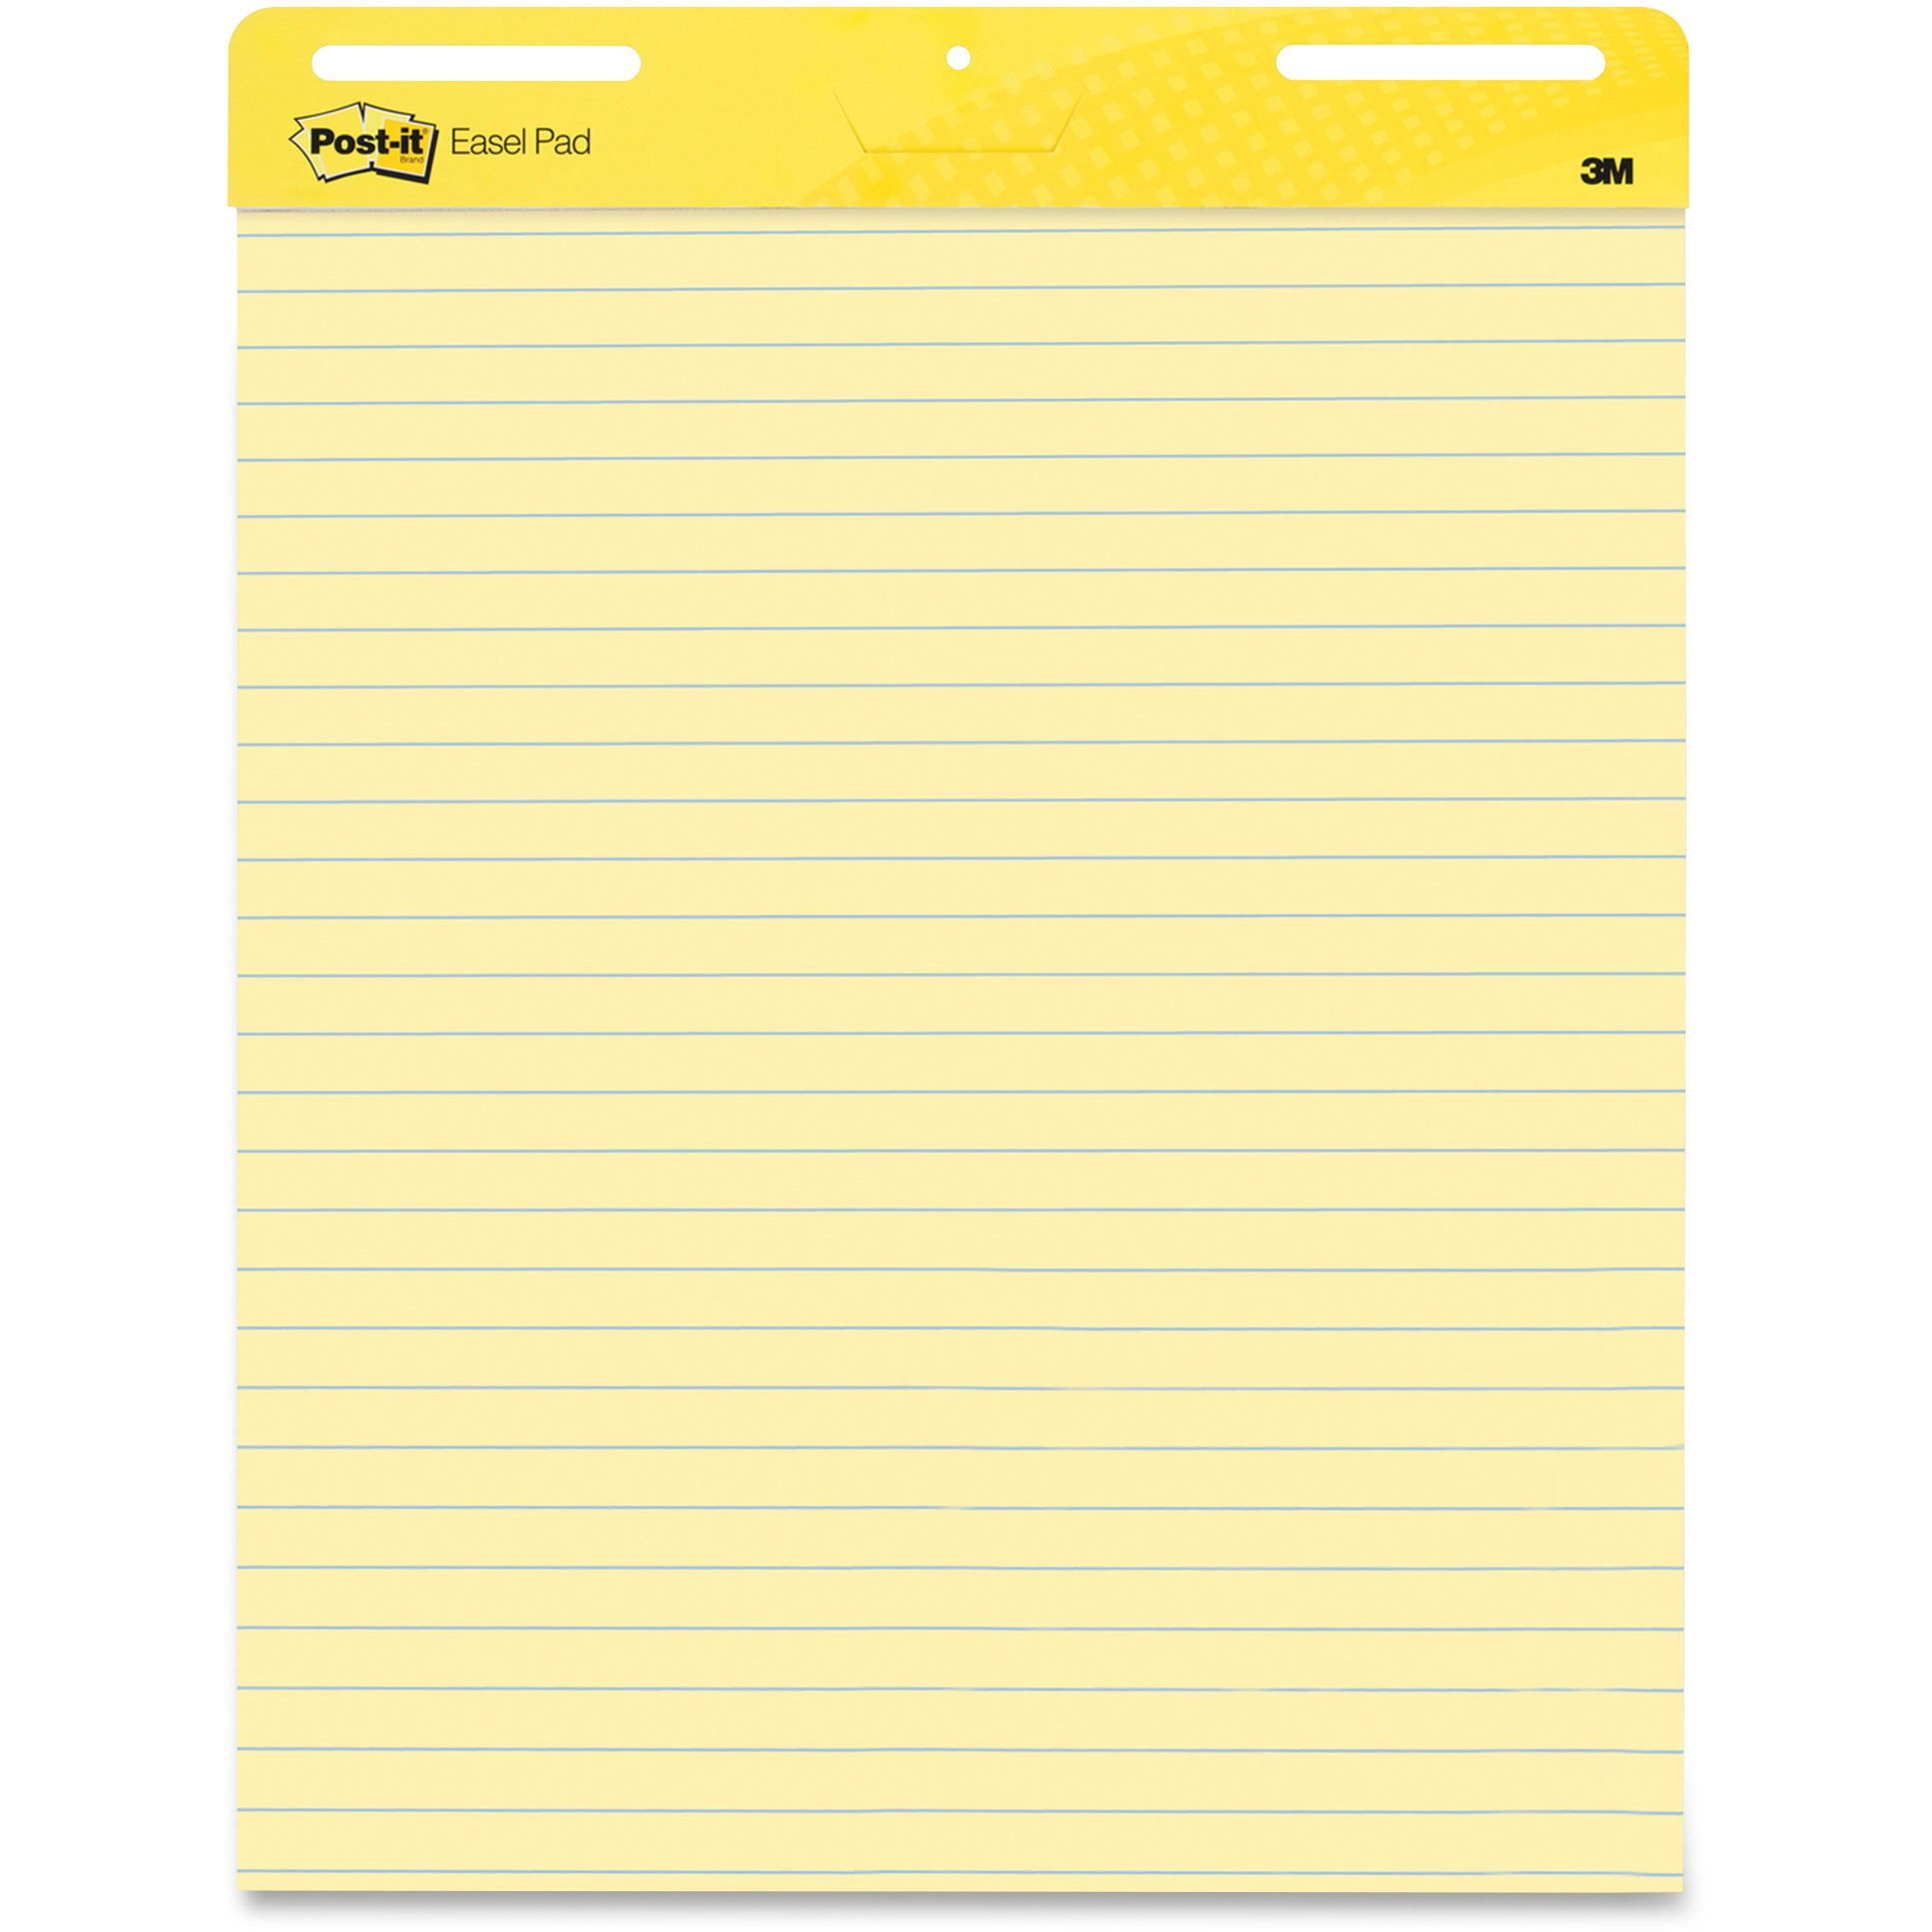 Post-it Self-Stick Easel Pads Twin Pack, Yellow, Ruled, 25 x 30-Inches, 30-Sheets/Pad, 2-Pads/Pack